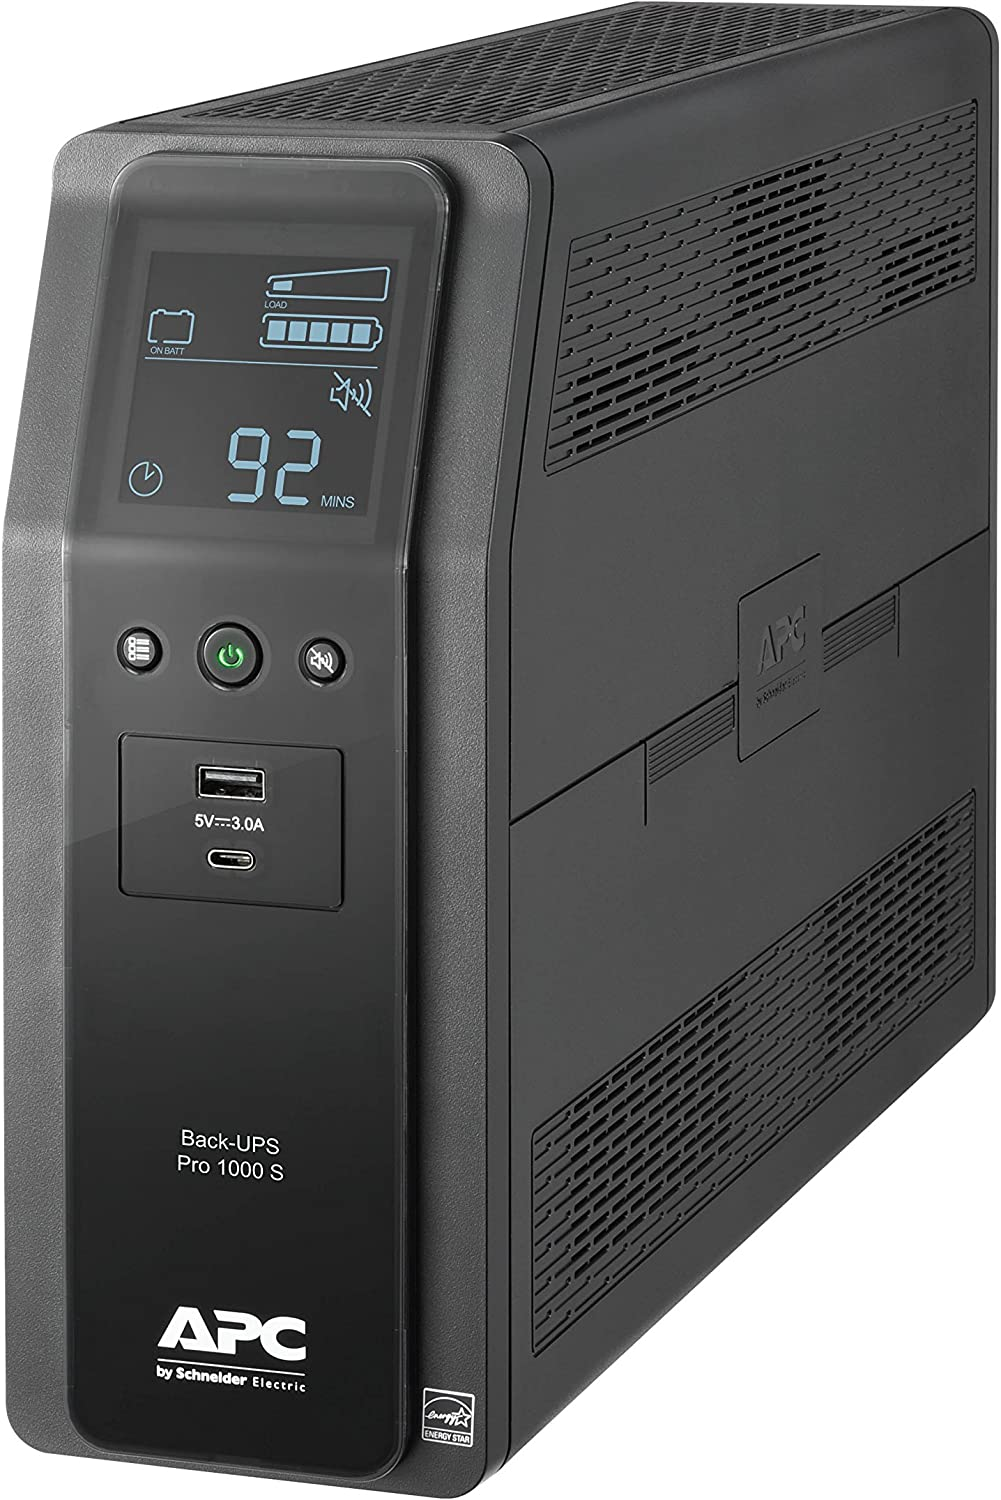 APC UPS BR1000MS, 1000VA Sine Wave UPS Battery Backup & Surge Protector, Backup Battery with AVR and LCD Display, 2 USB Charging Ports, Uninterruptible Power Supply, APC Back-UPS Pro Series